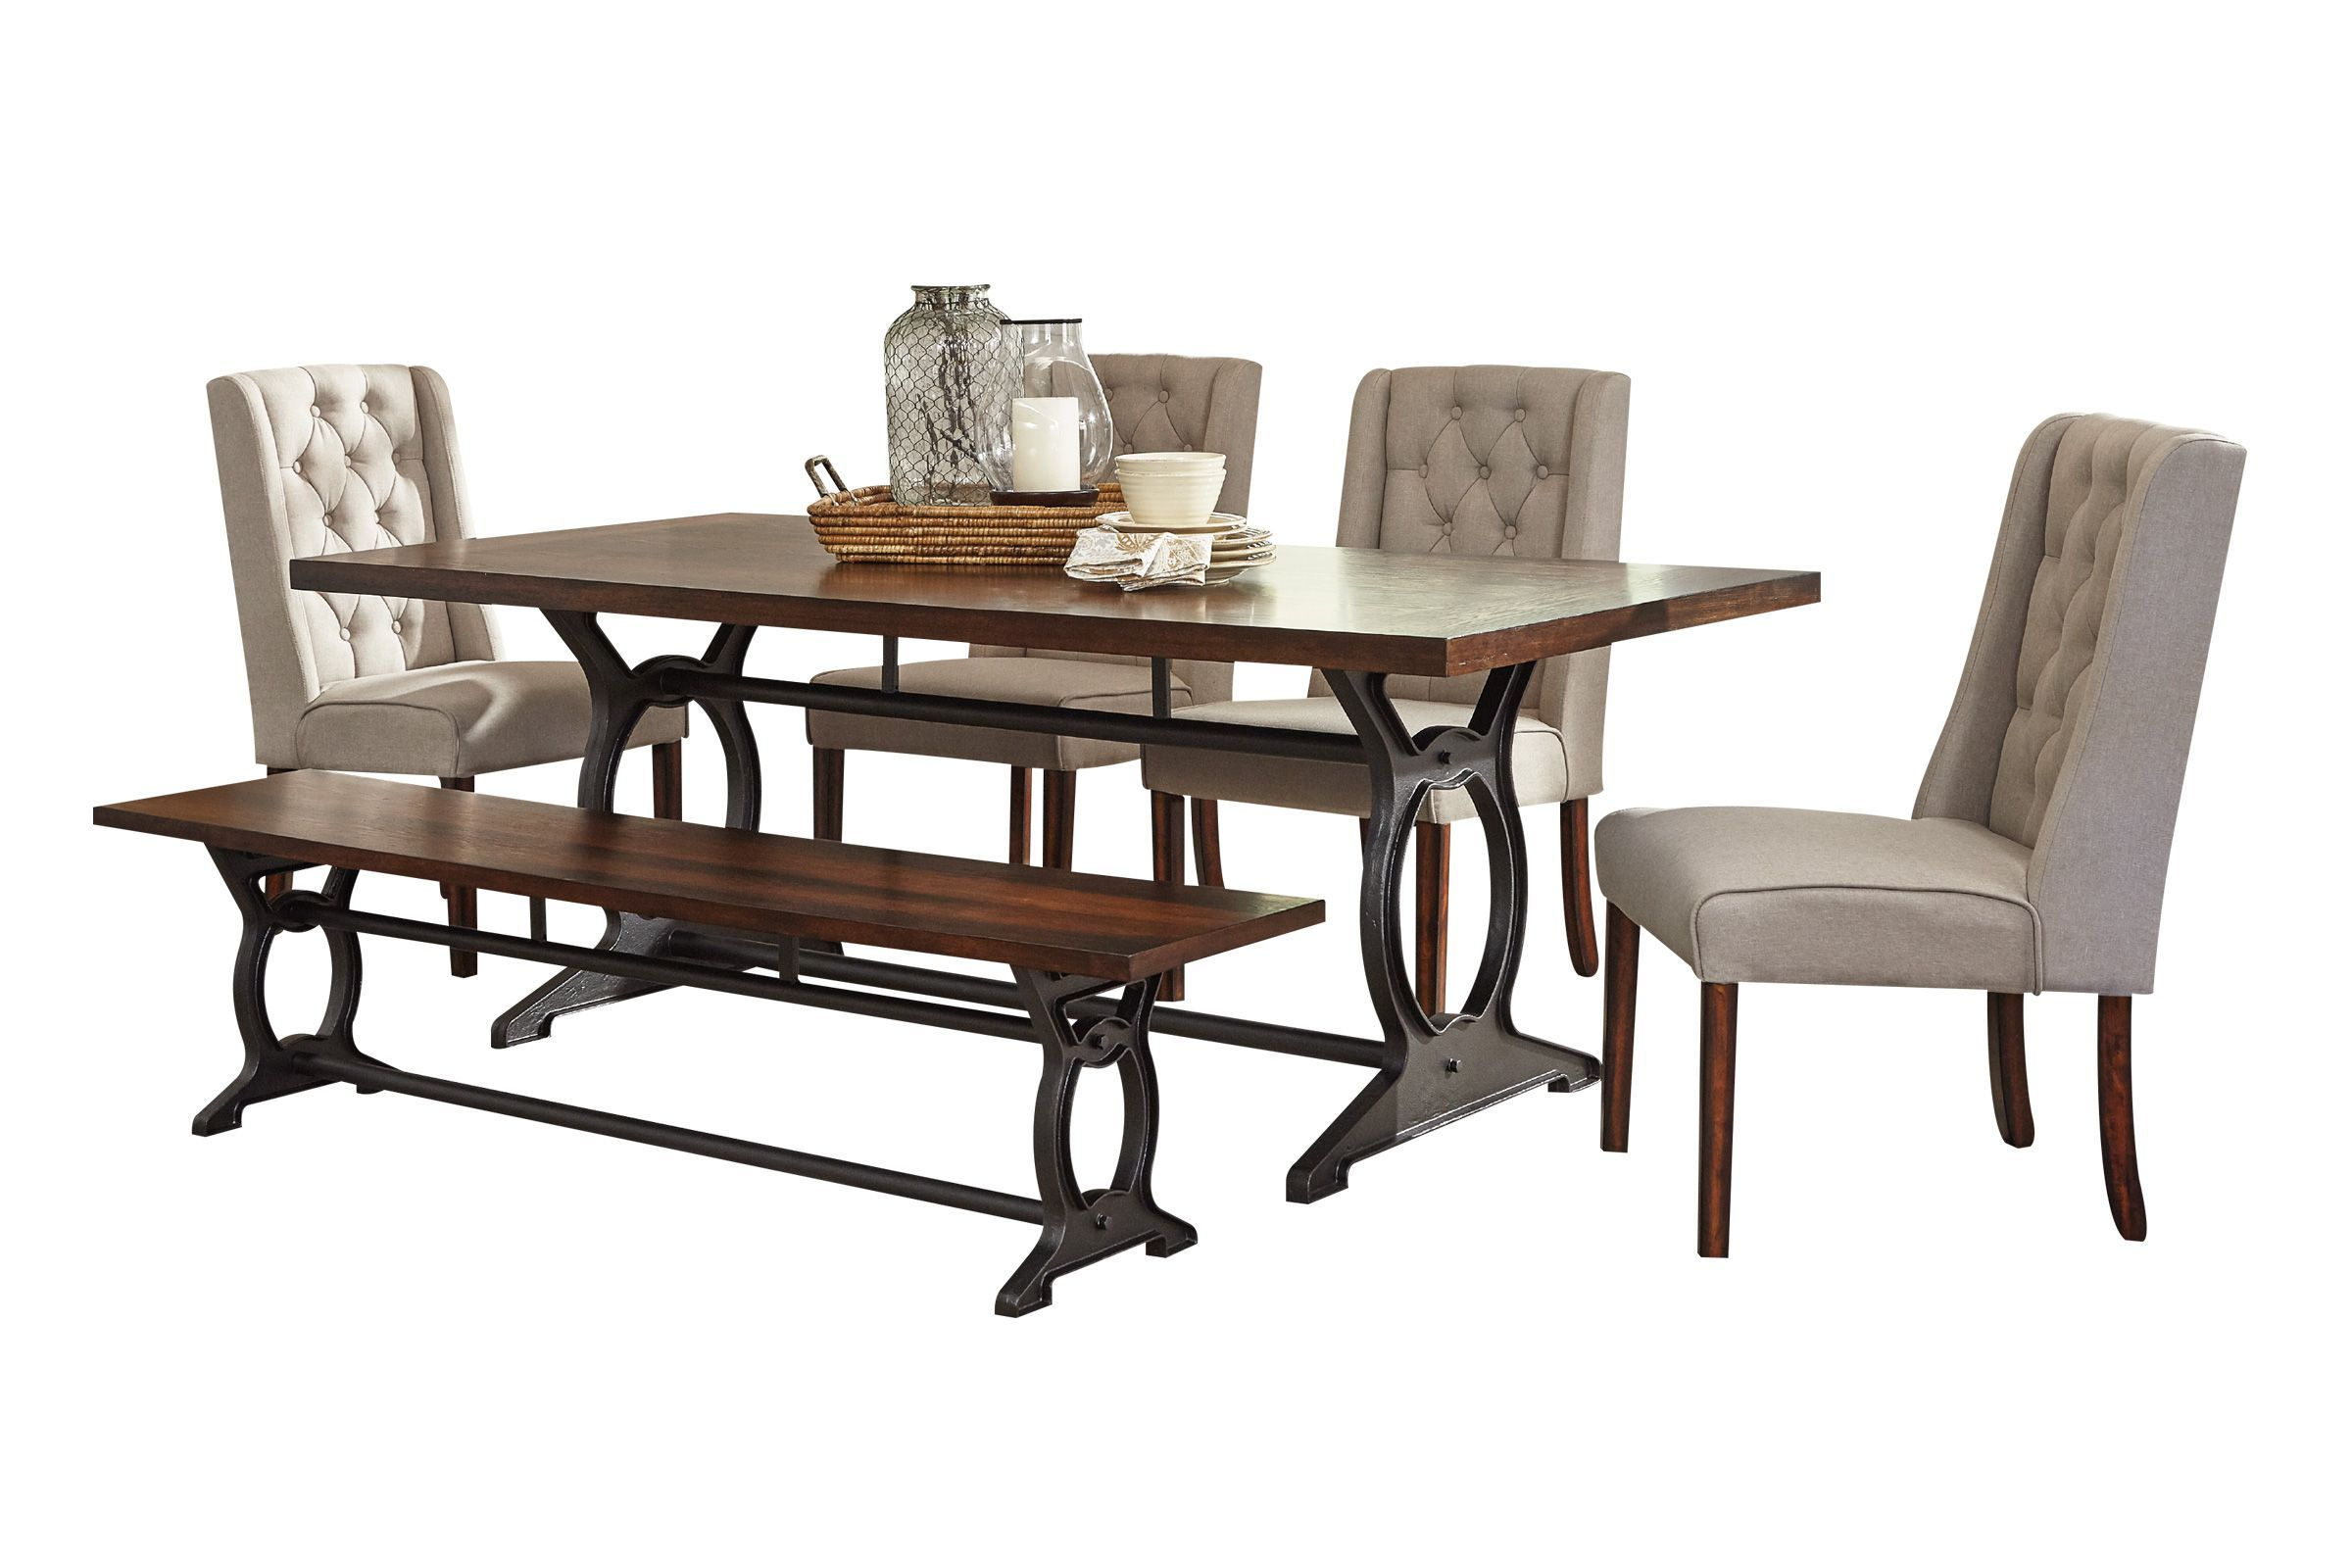 Laurel Dining Table 4 Side Chairs Bench White Living Room